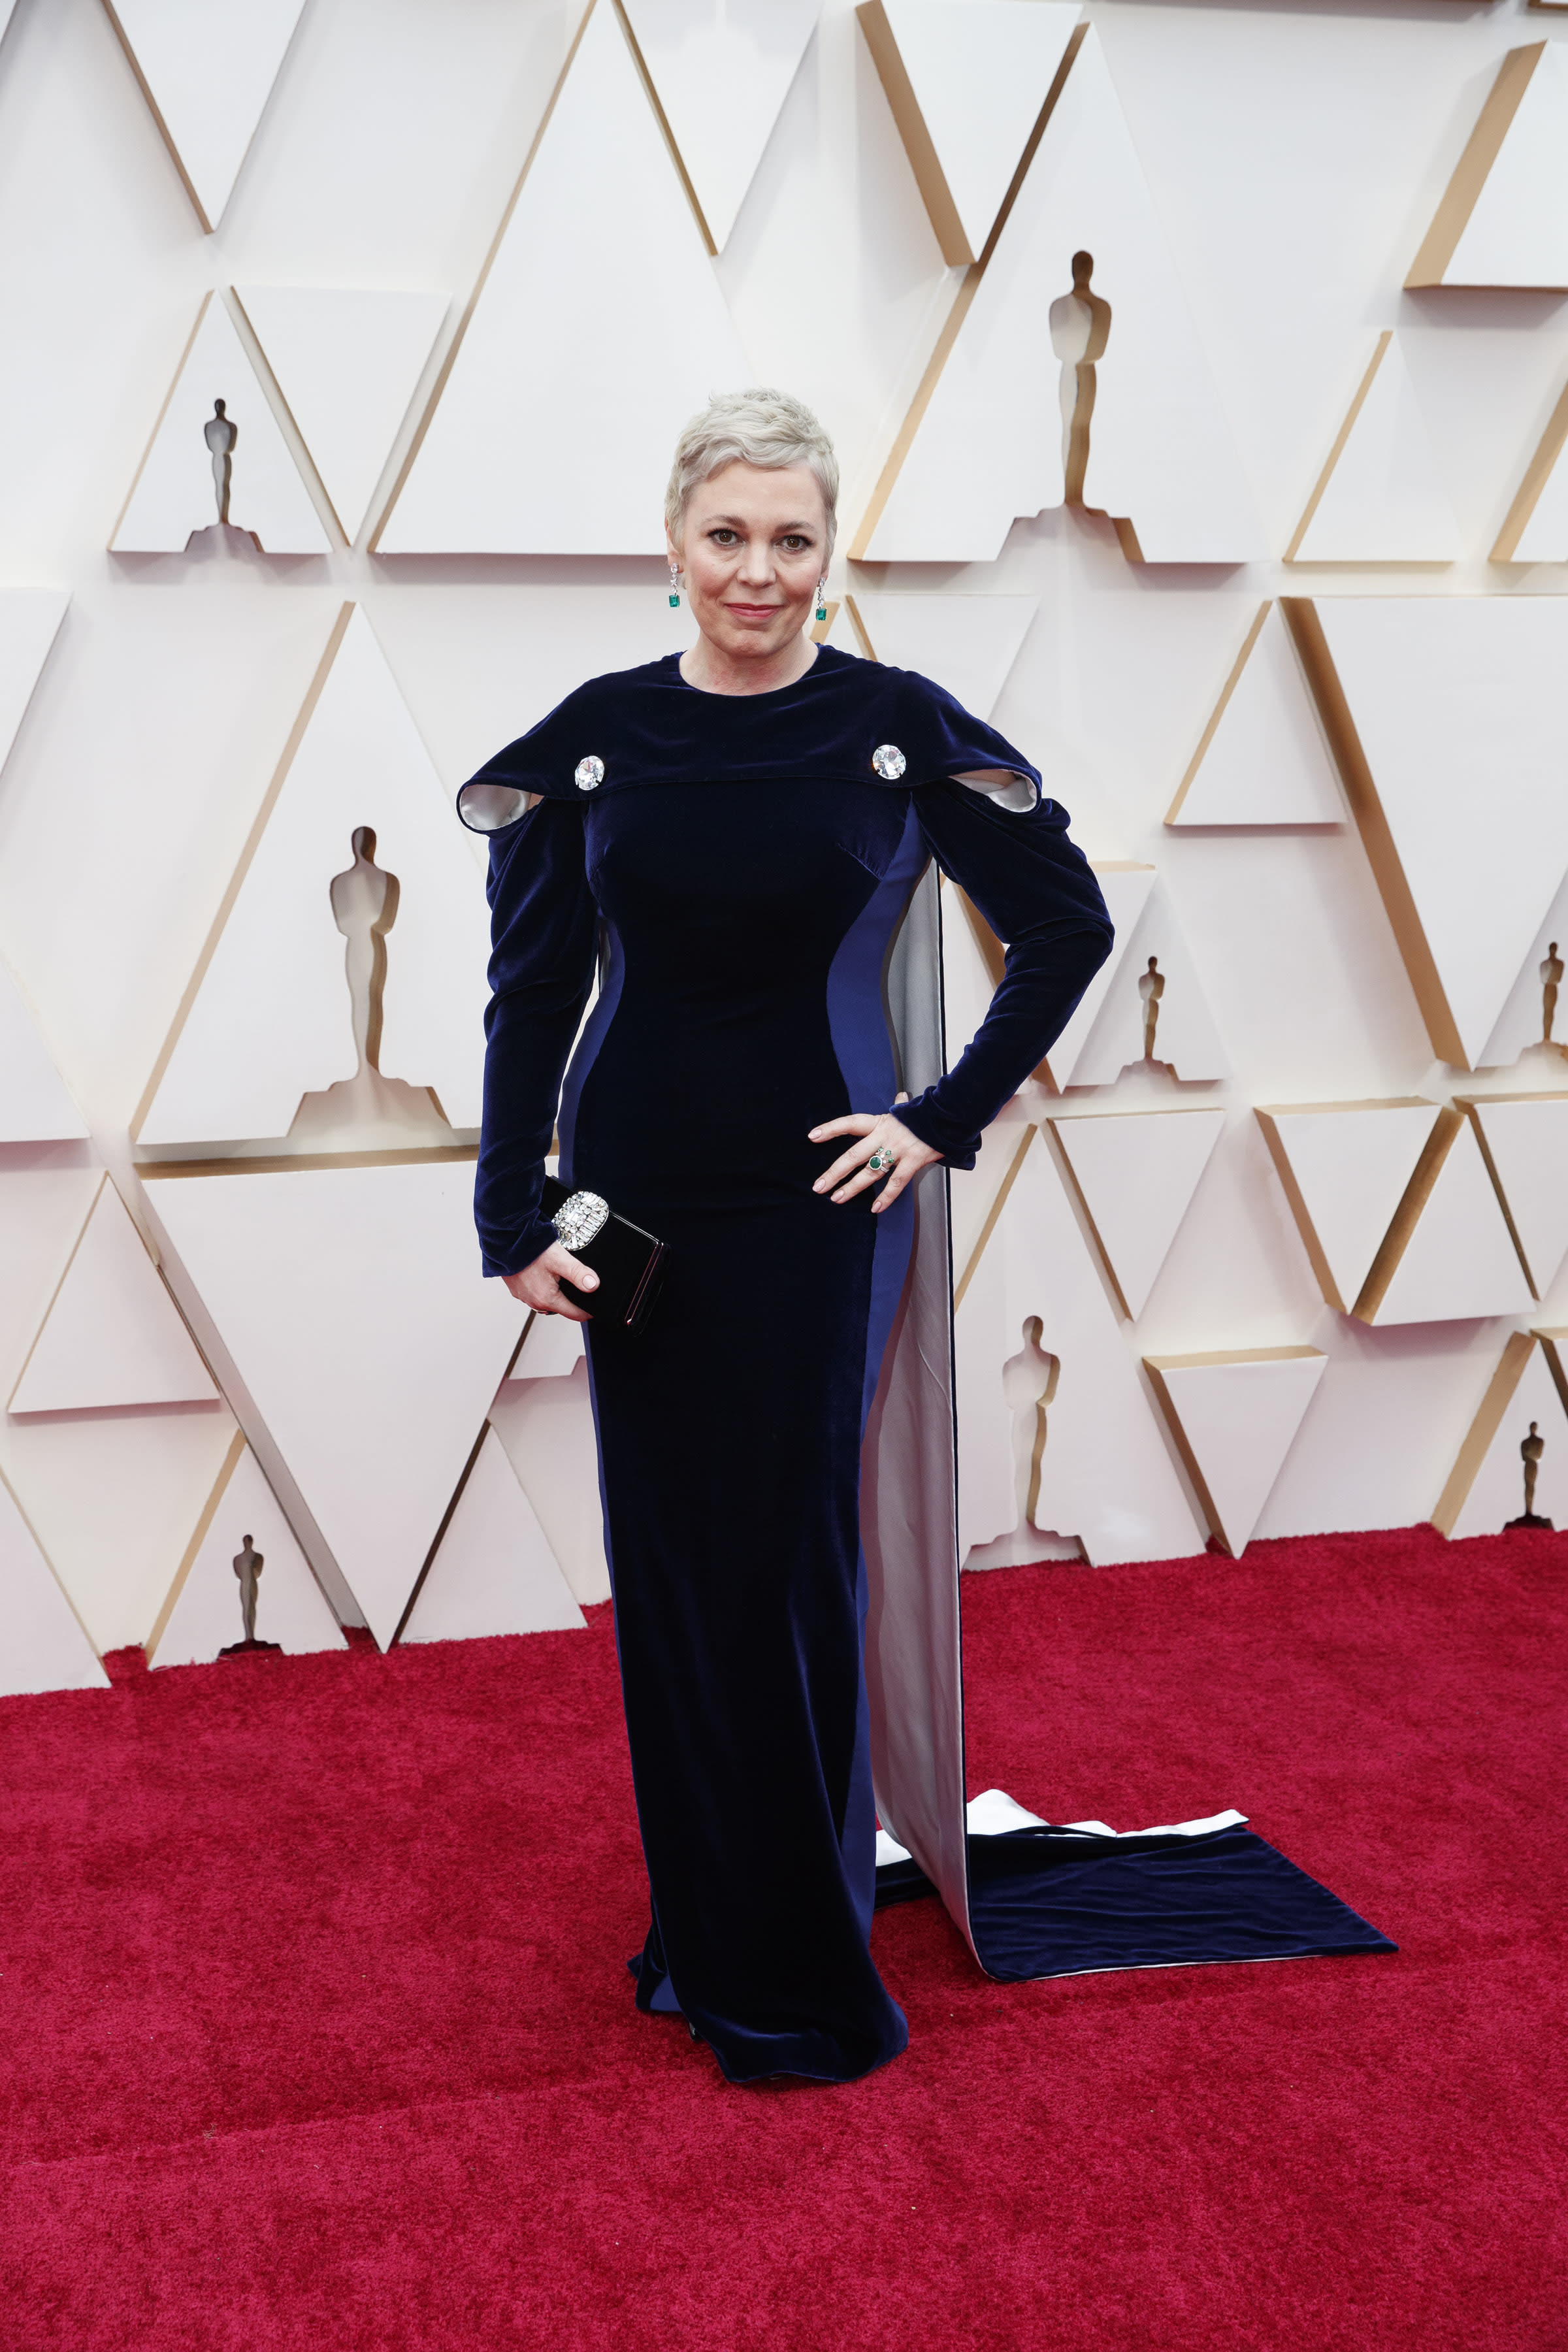 THE OSCARS® - The 92nd Oscars® broadcasts live on Sunday, Feb. 9,2020 at the Dolby Theatre® at Hollywood & Highland Center® in Hollywood and will be televised live on The ABC Television Network at 8:00 p.m. EST/5:00 p.m. PST. (Rick Rowell via Getty Images) OLIVIA COLMAN